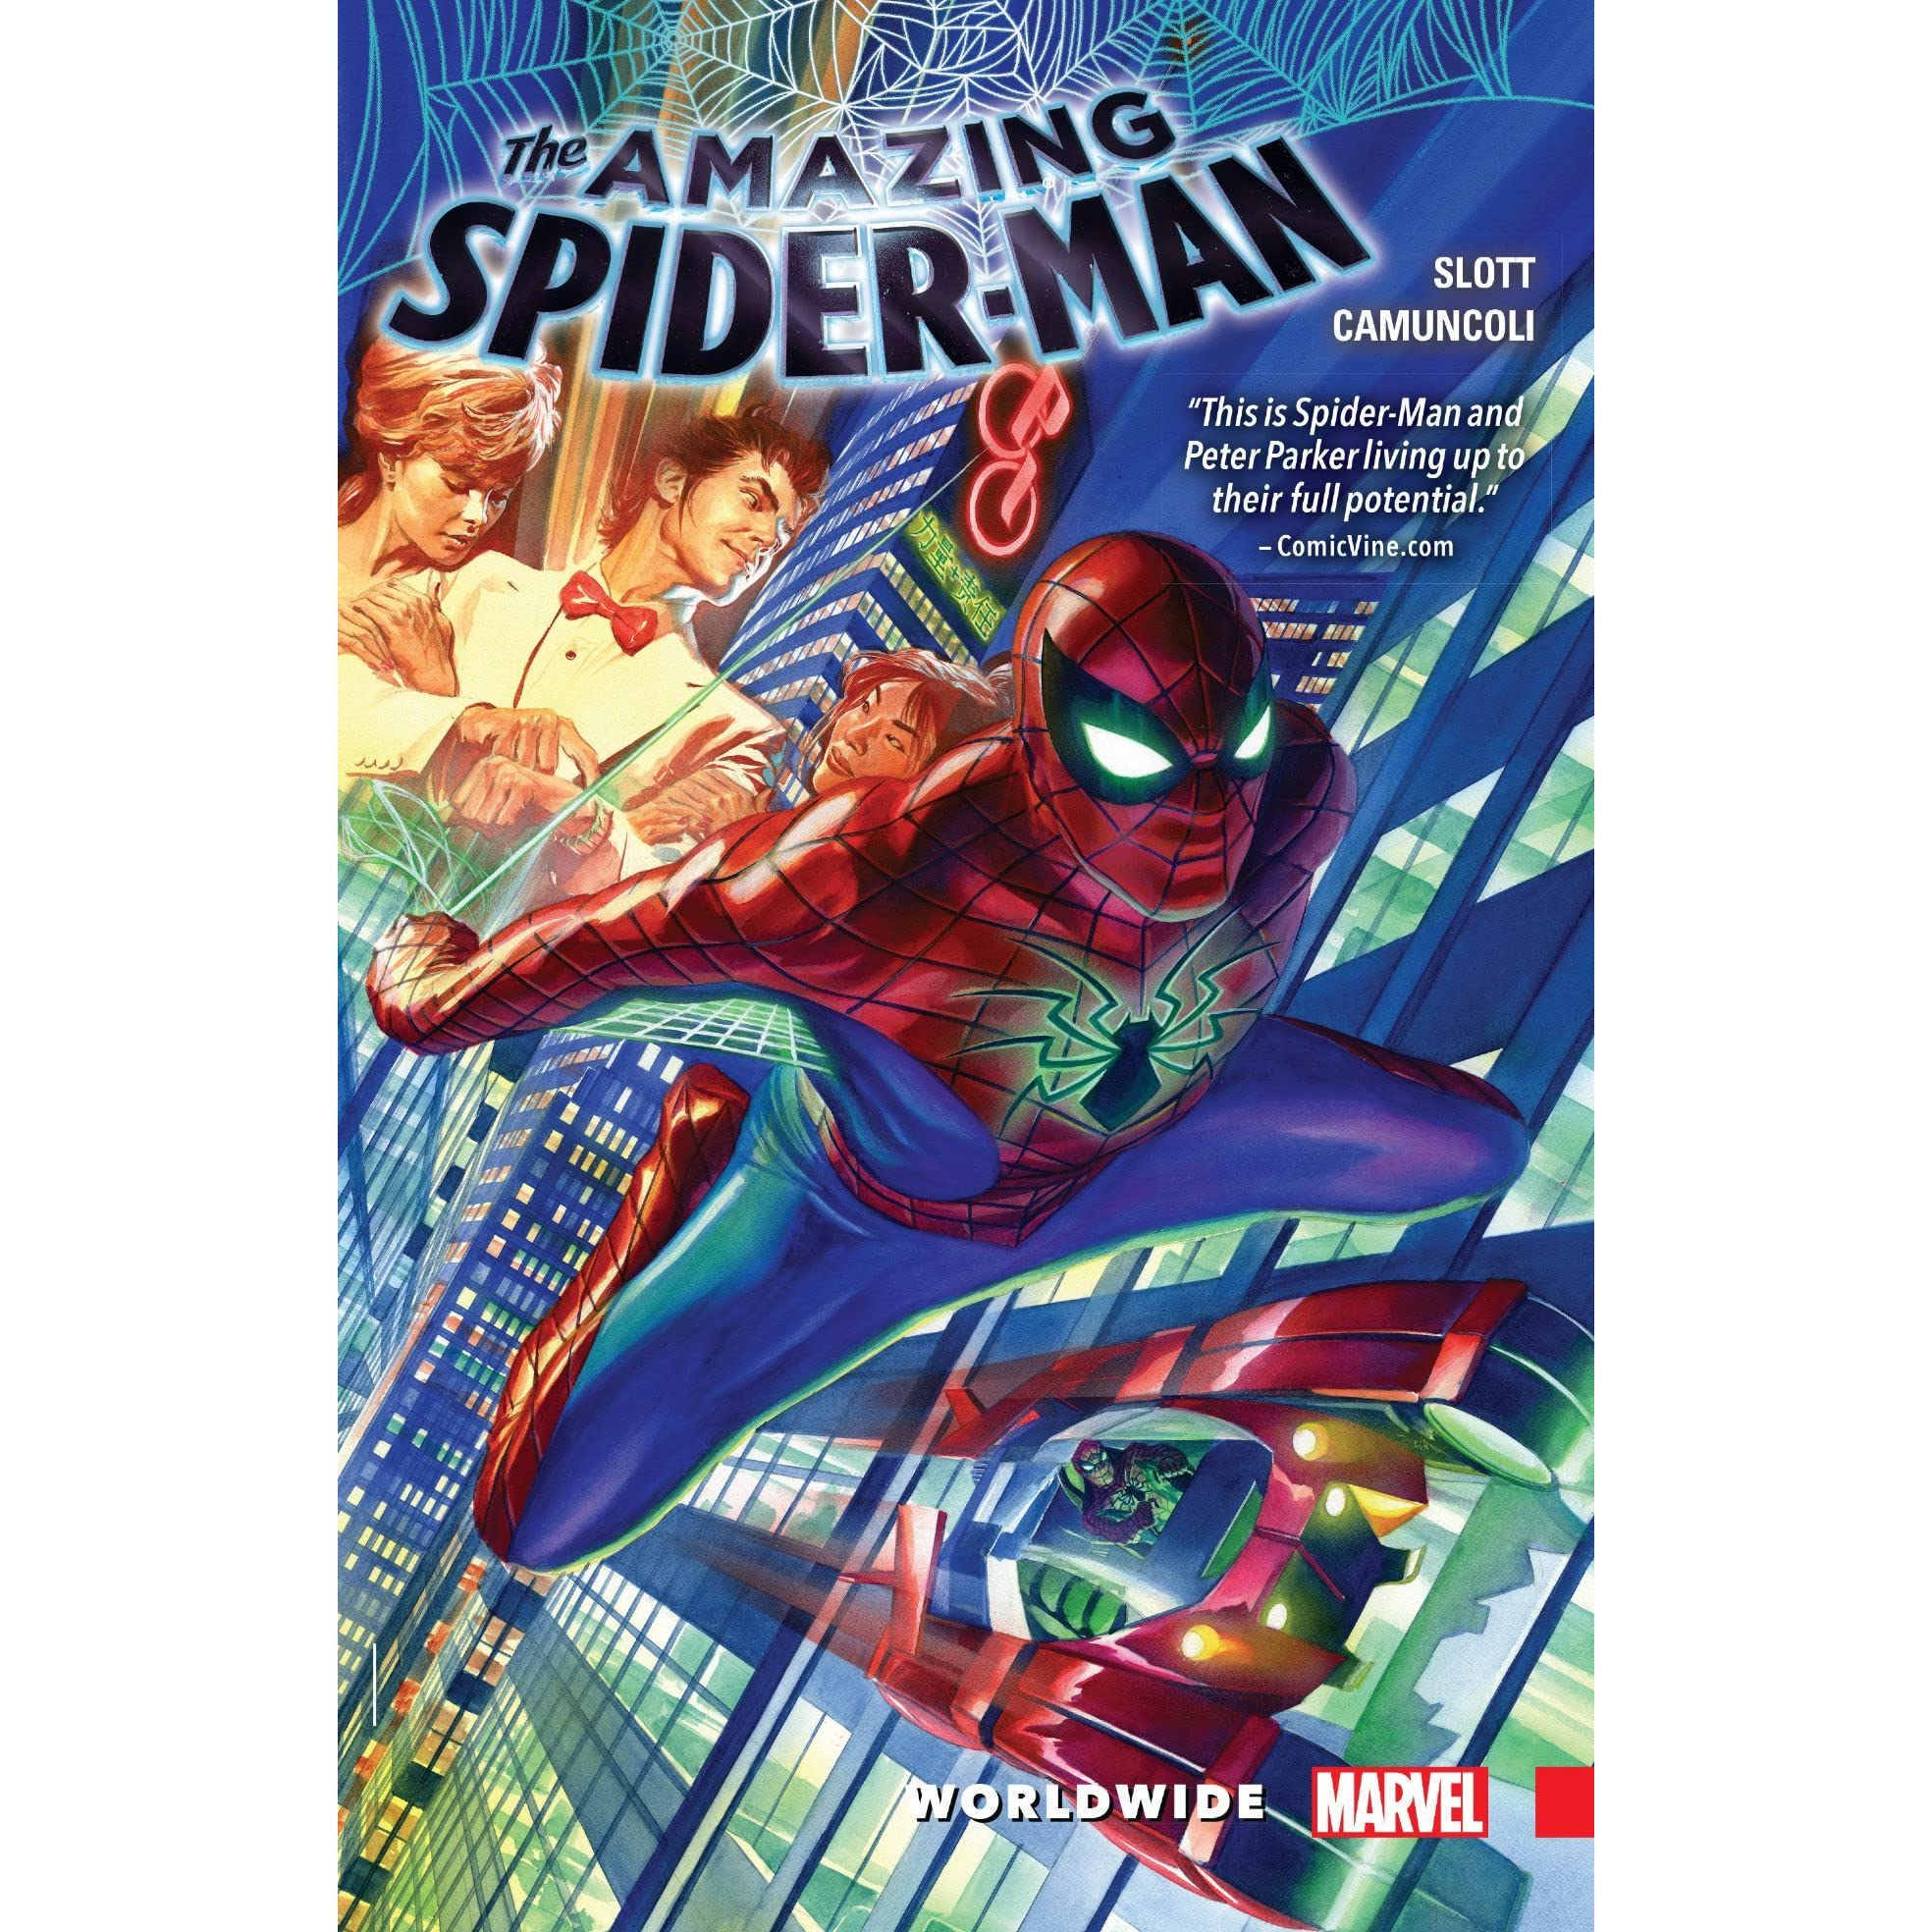 Amazing Spider-Man: Worldwide, Vol  1 by Dan Slott